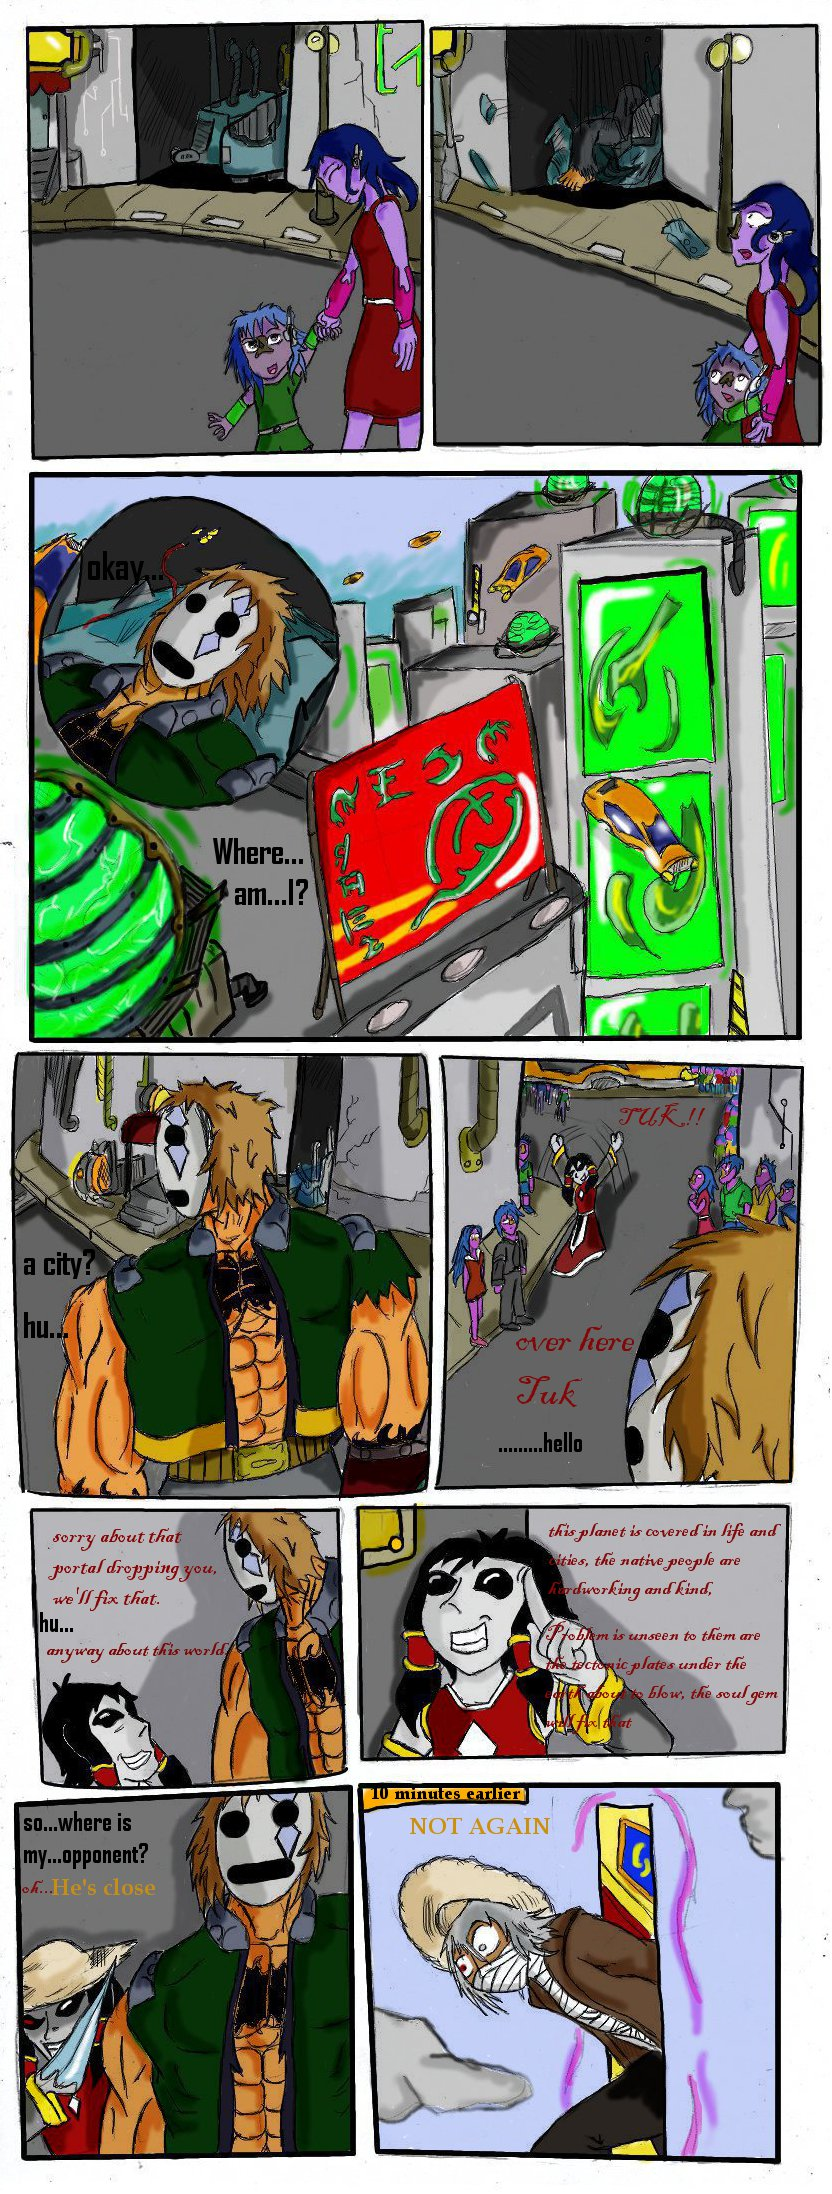 vital sparks round 2 page 4 by scrap-paper22